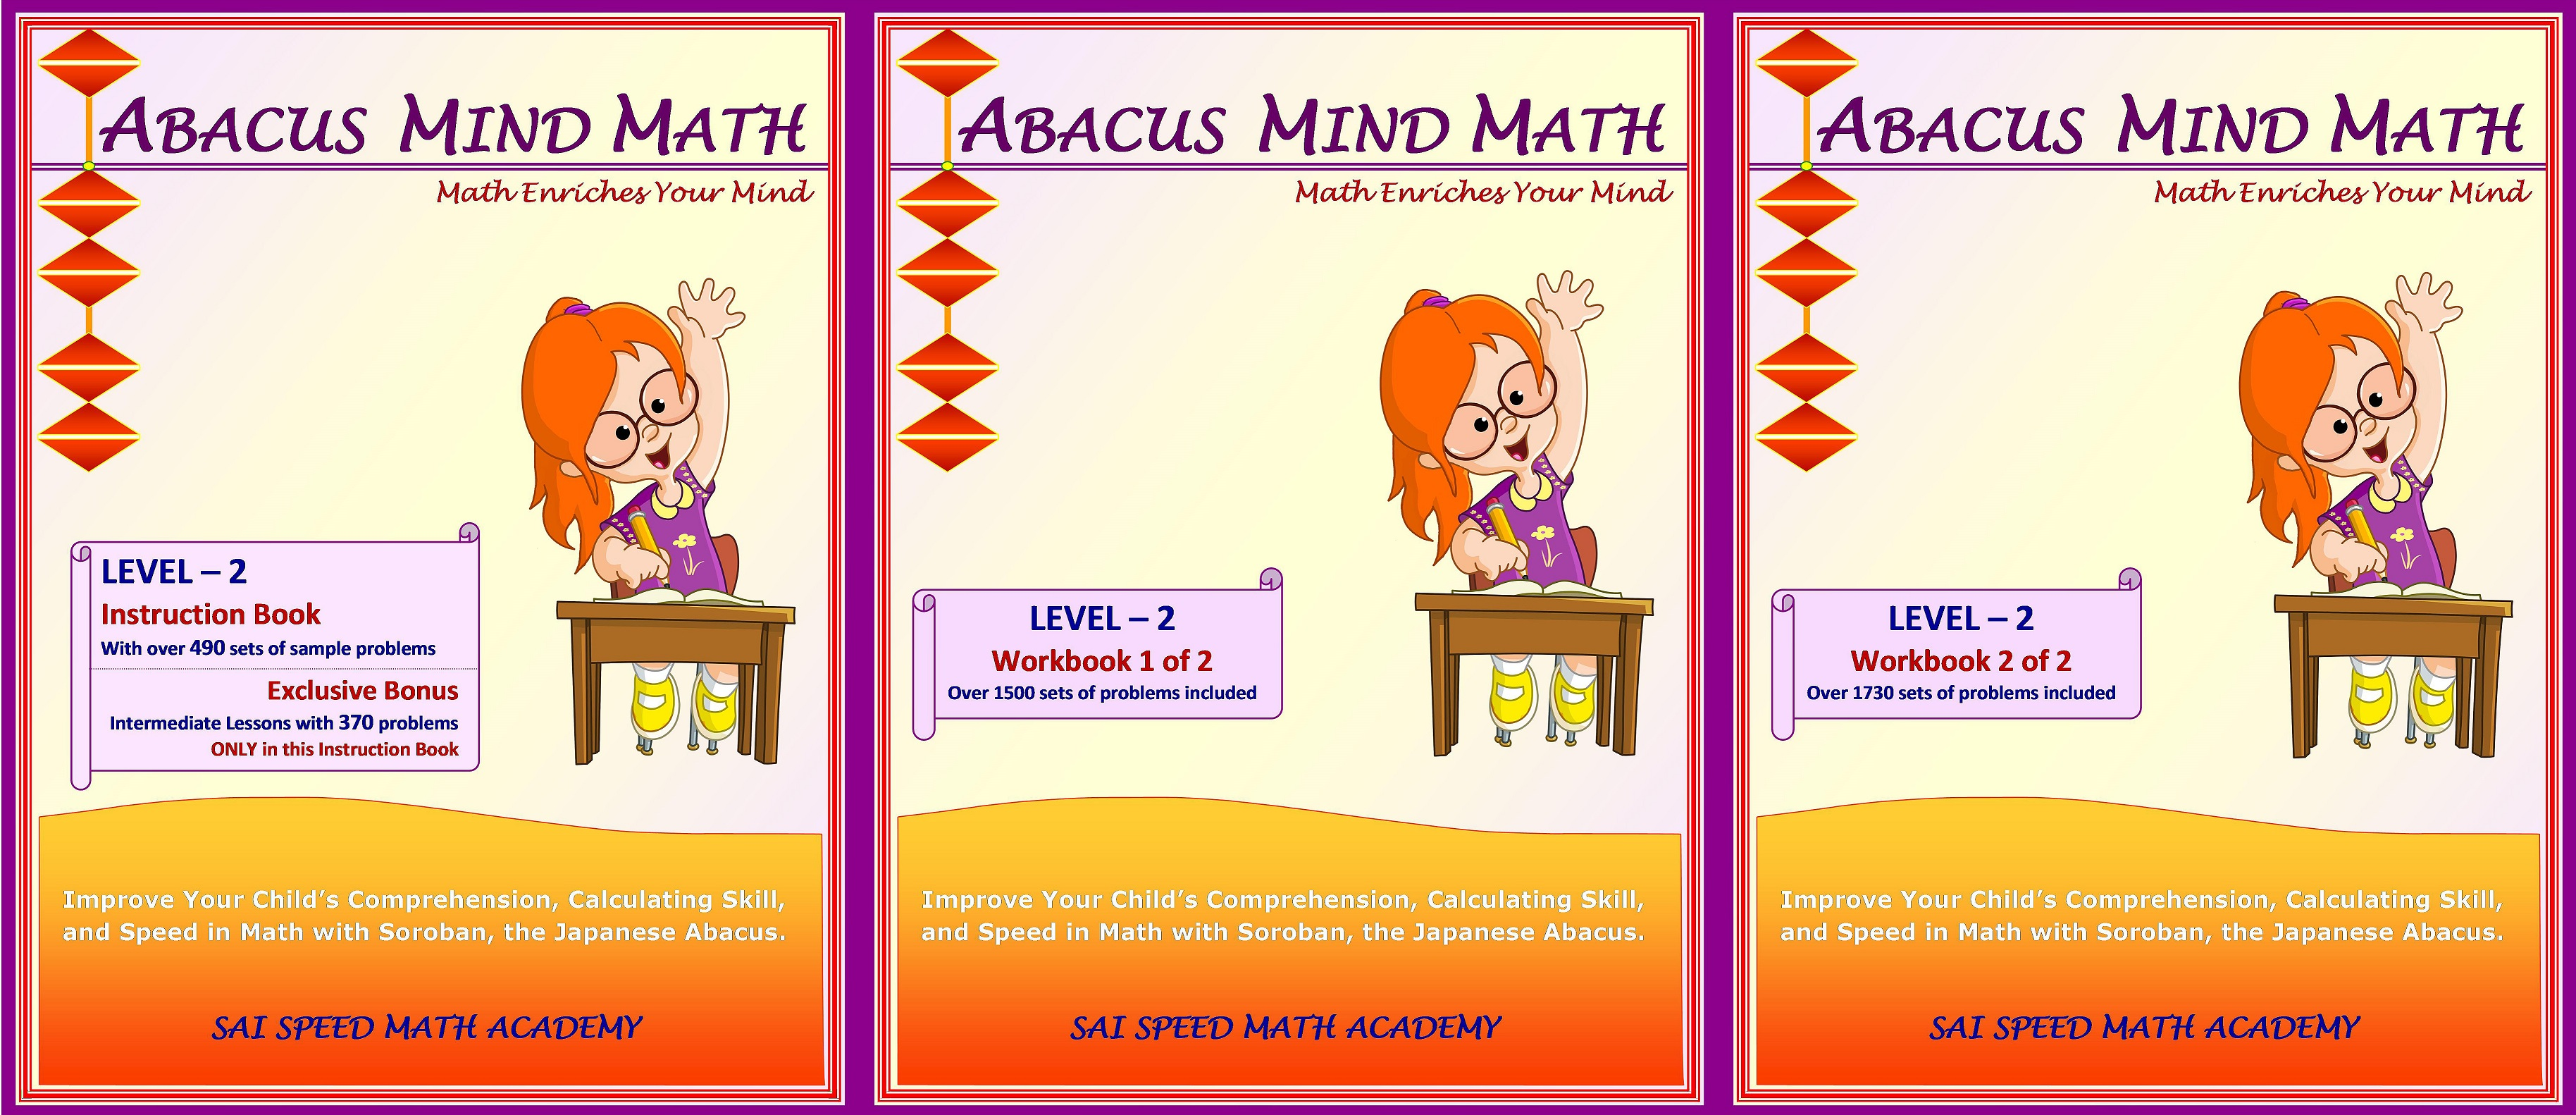 Uncategorized Abacus Maths Worksheets books complete set level 2 instruction book work 1 and no return item by sai speed math academy